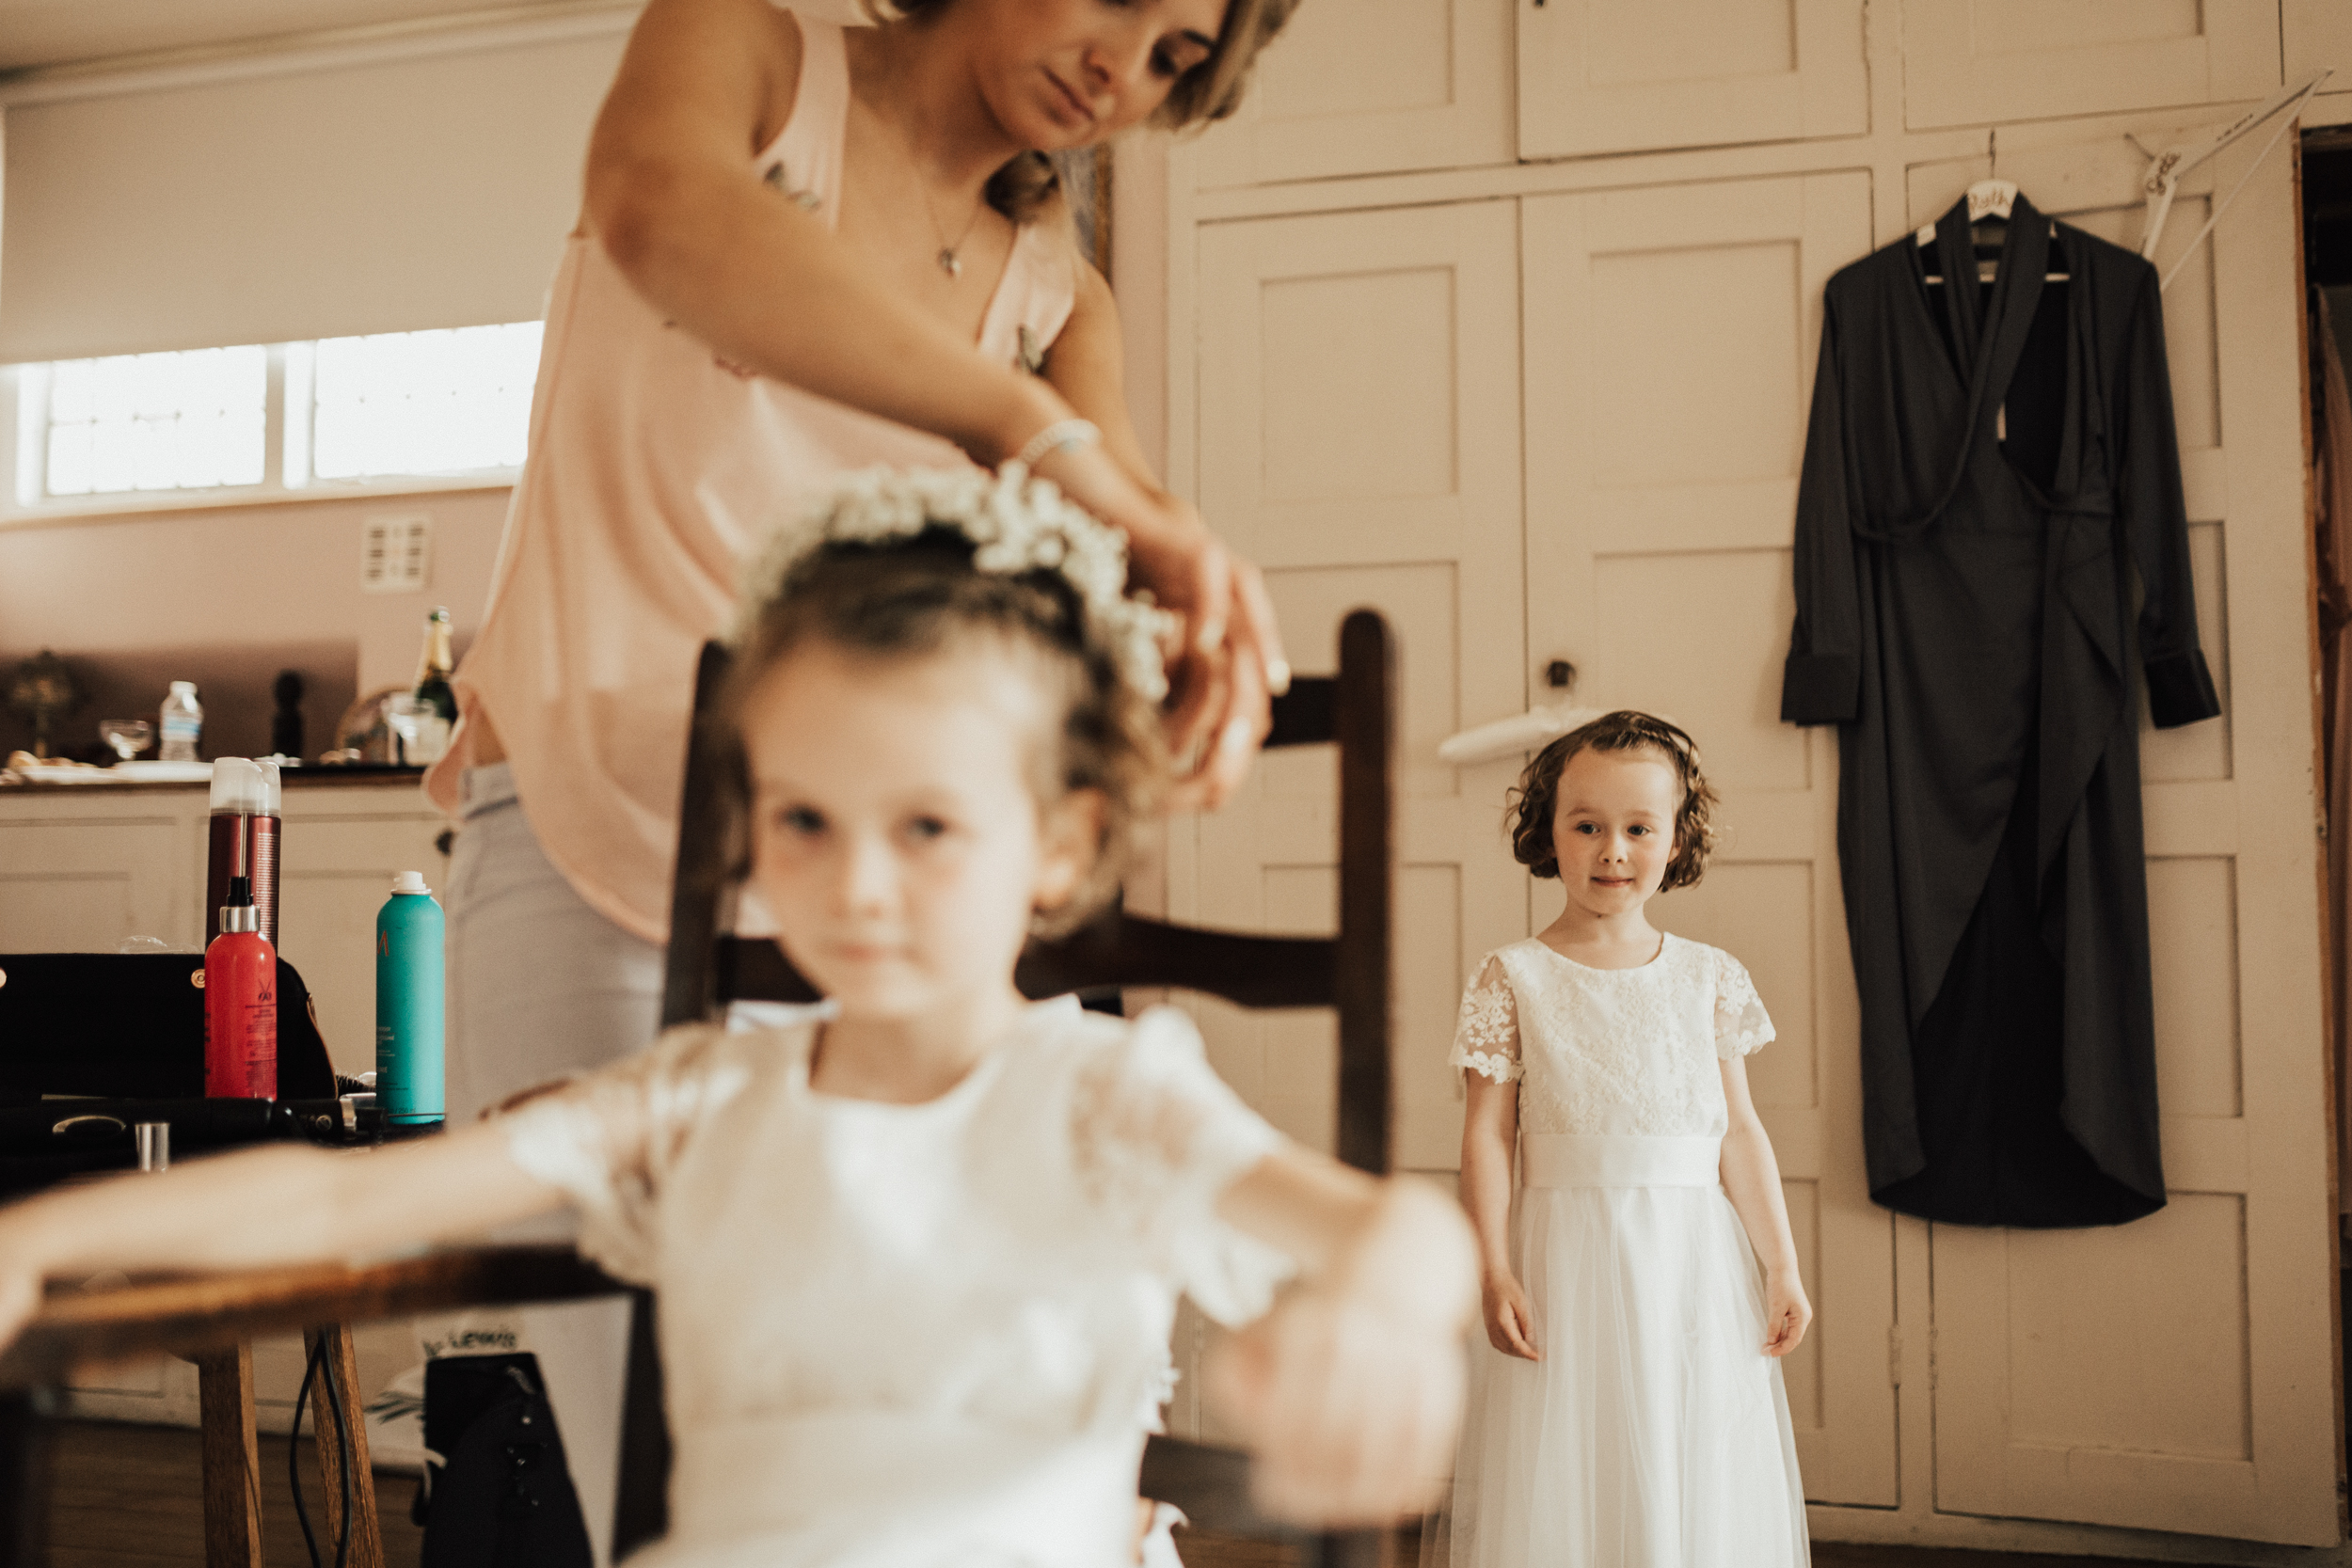 Lois-Conor-Wedding-Norfolk-Voewood-Darina-Stoda-Photography-38.jpg